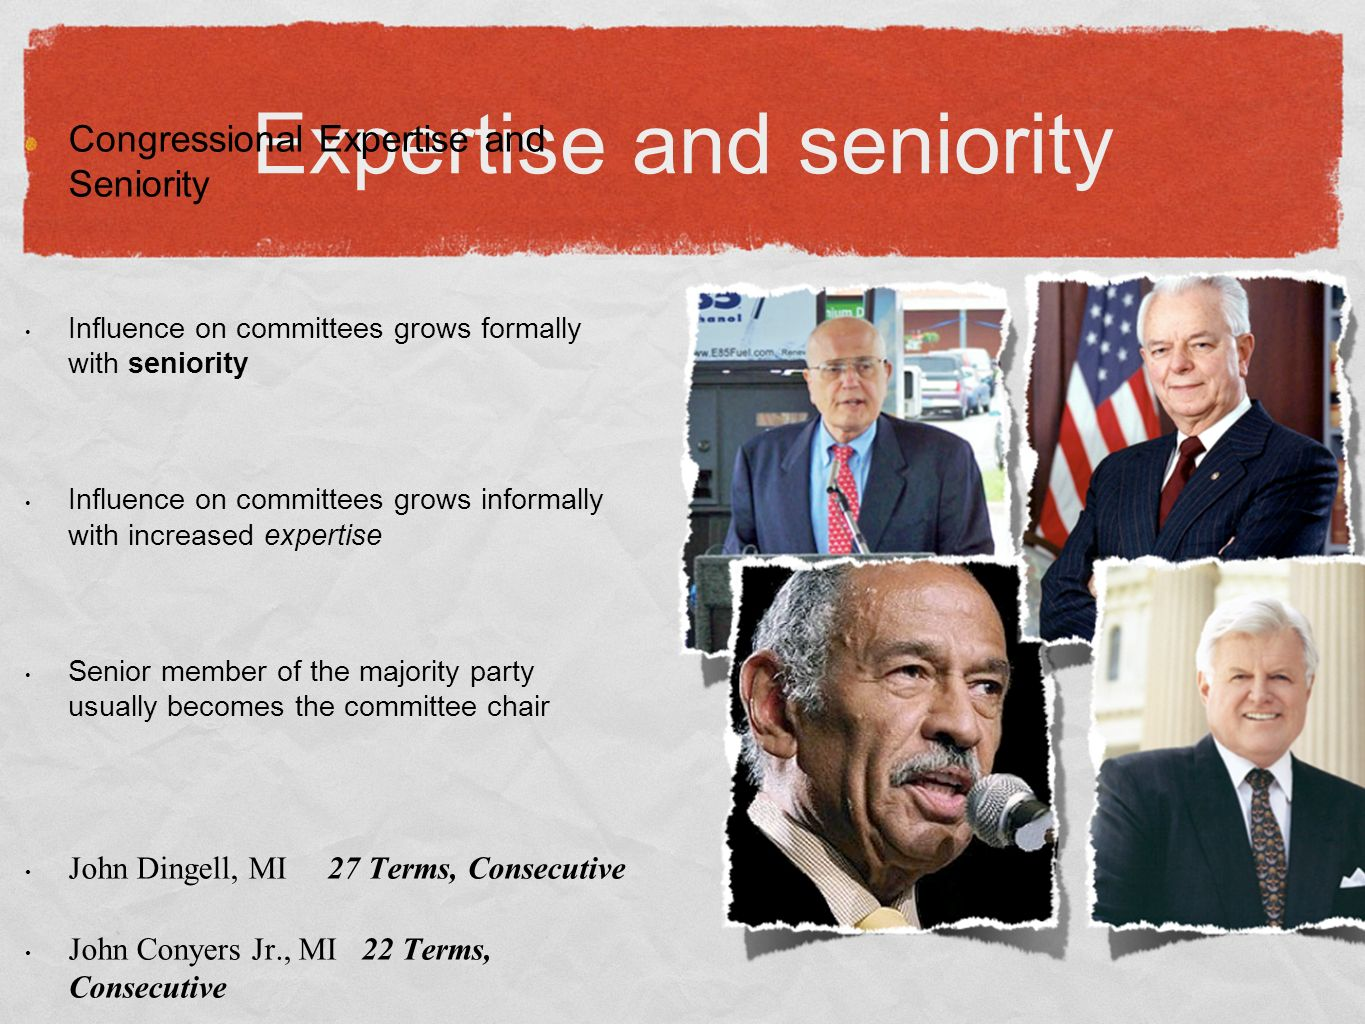 Expertise and seniority Congressional Expertise and Seniority Influence on committees grows formally with seniority Influence on committees grows informally with increased expertise Senior member of the majority party usually becomes the committee chair John Dingell, MI 27 Terms, Consecutive John Conyers Jr., MI 22 Terms, Consecutive Robert Byrd, Senate WV Ted Kennedy, Senate Mass